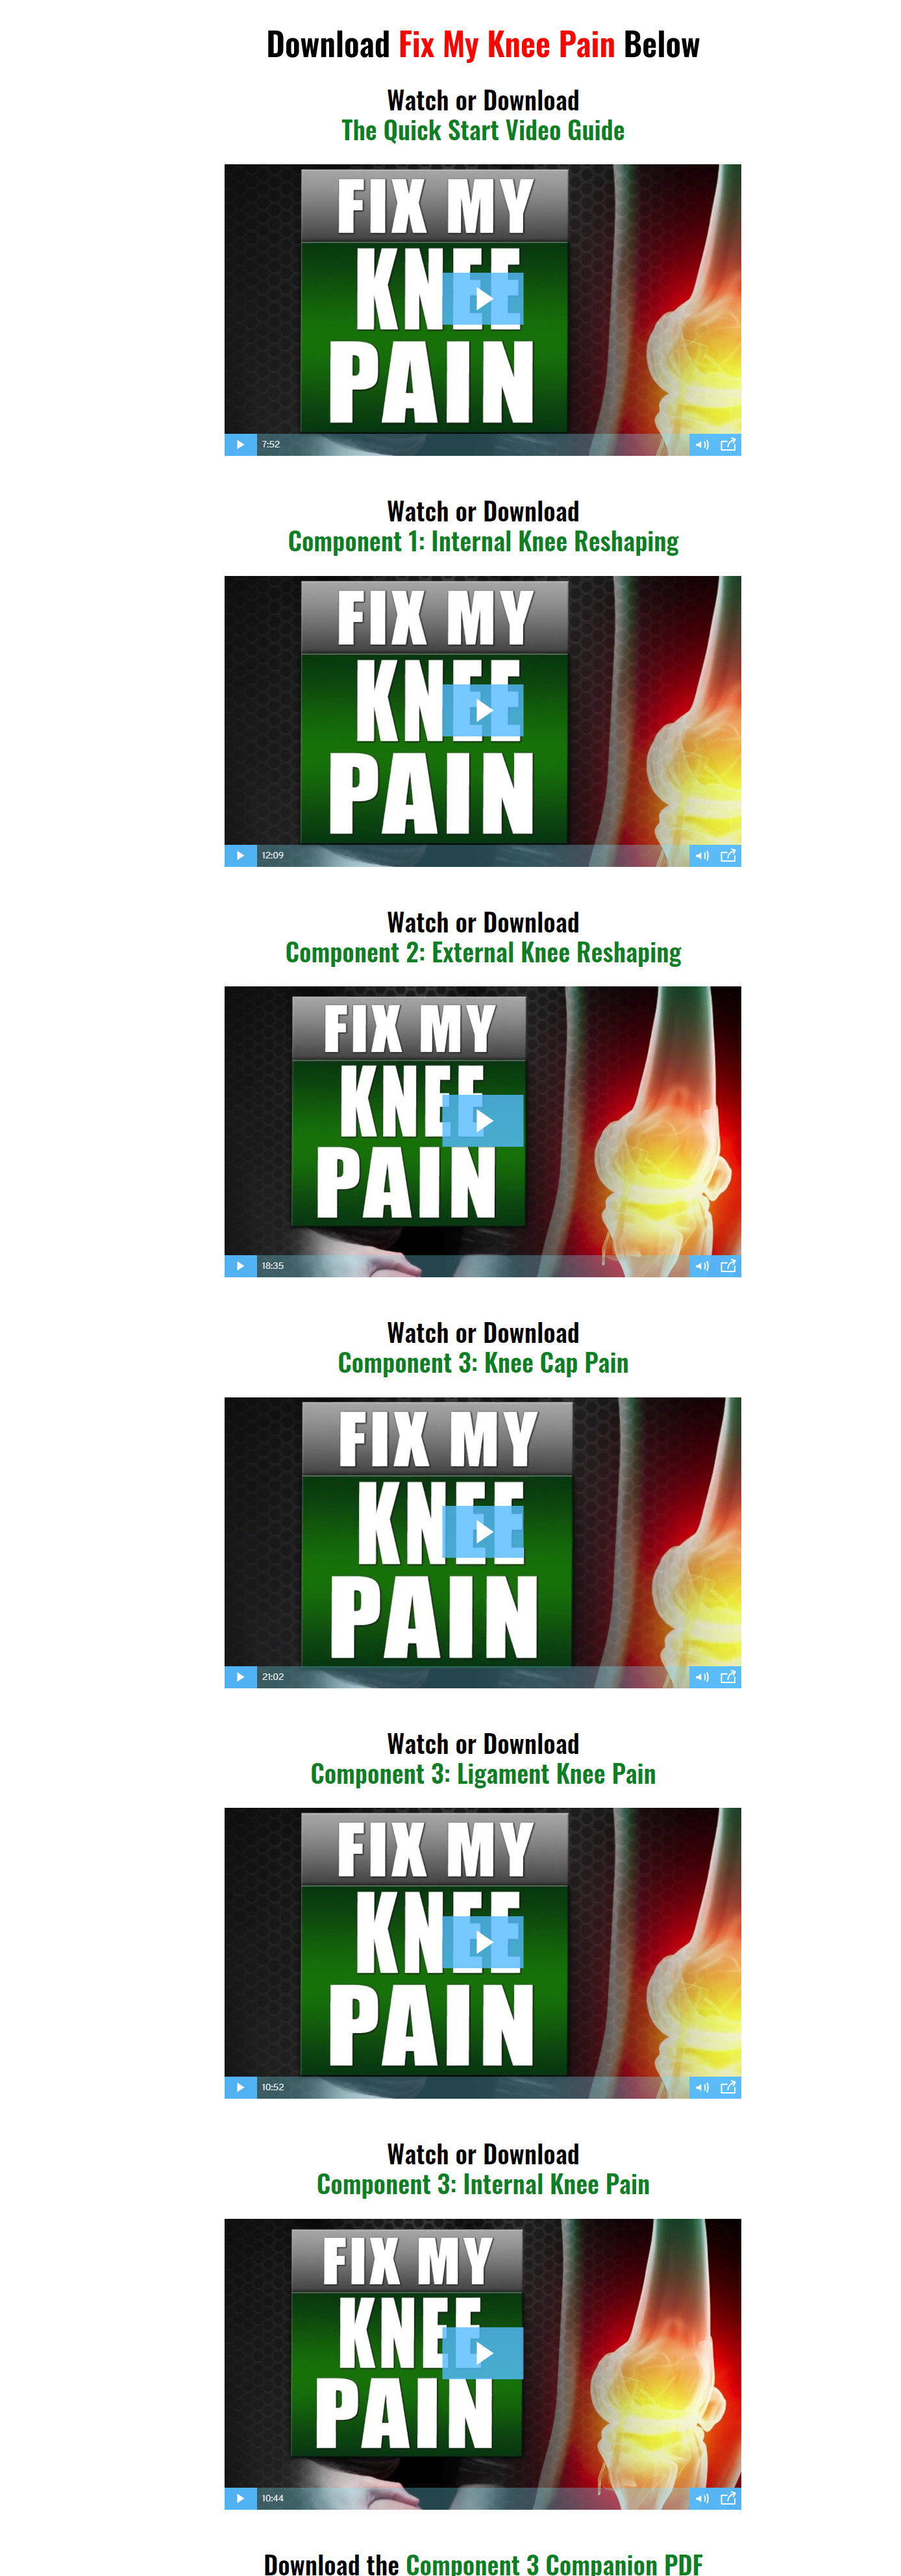 Fix My Knee Pain Download Page